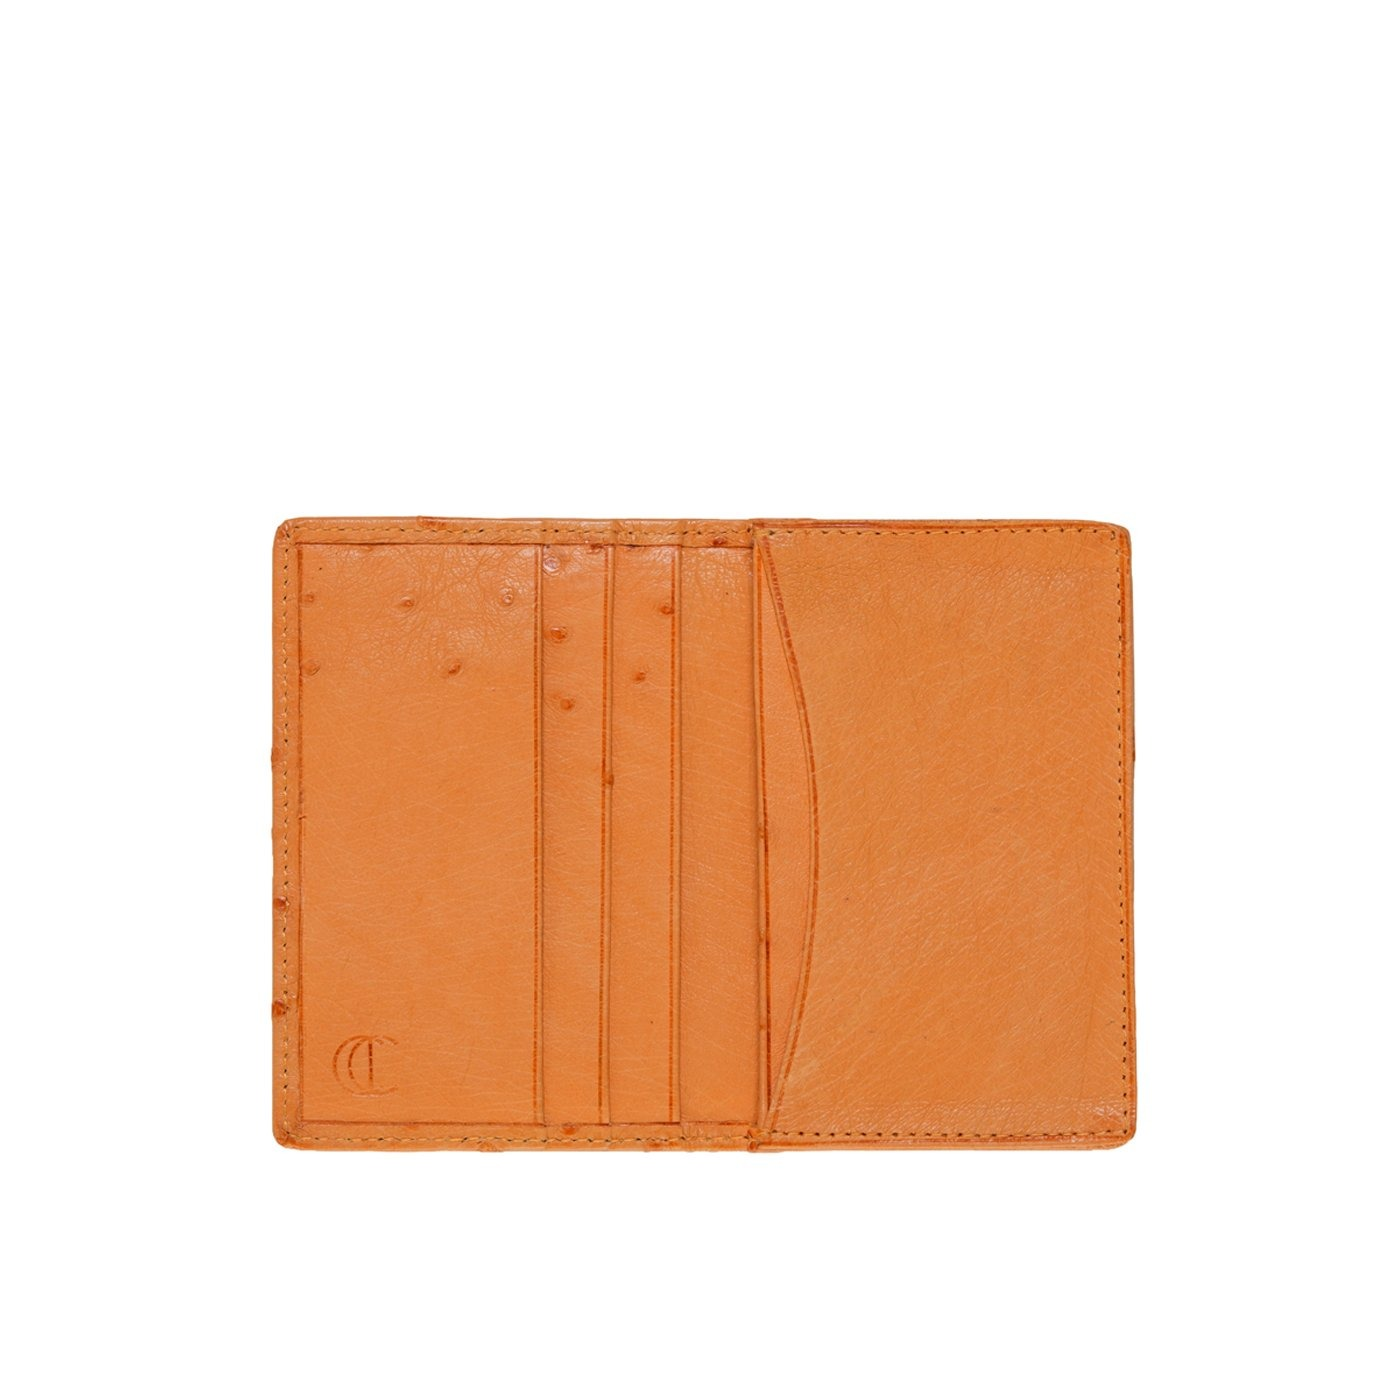 ID Card Wallet 3